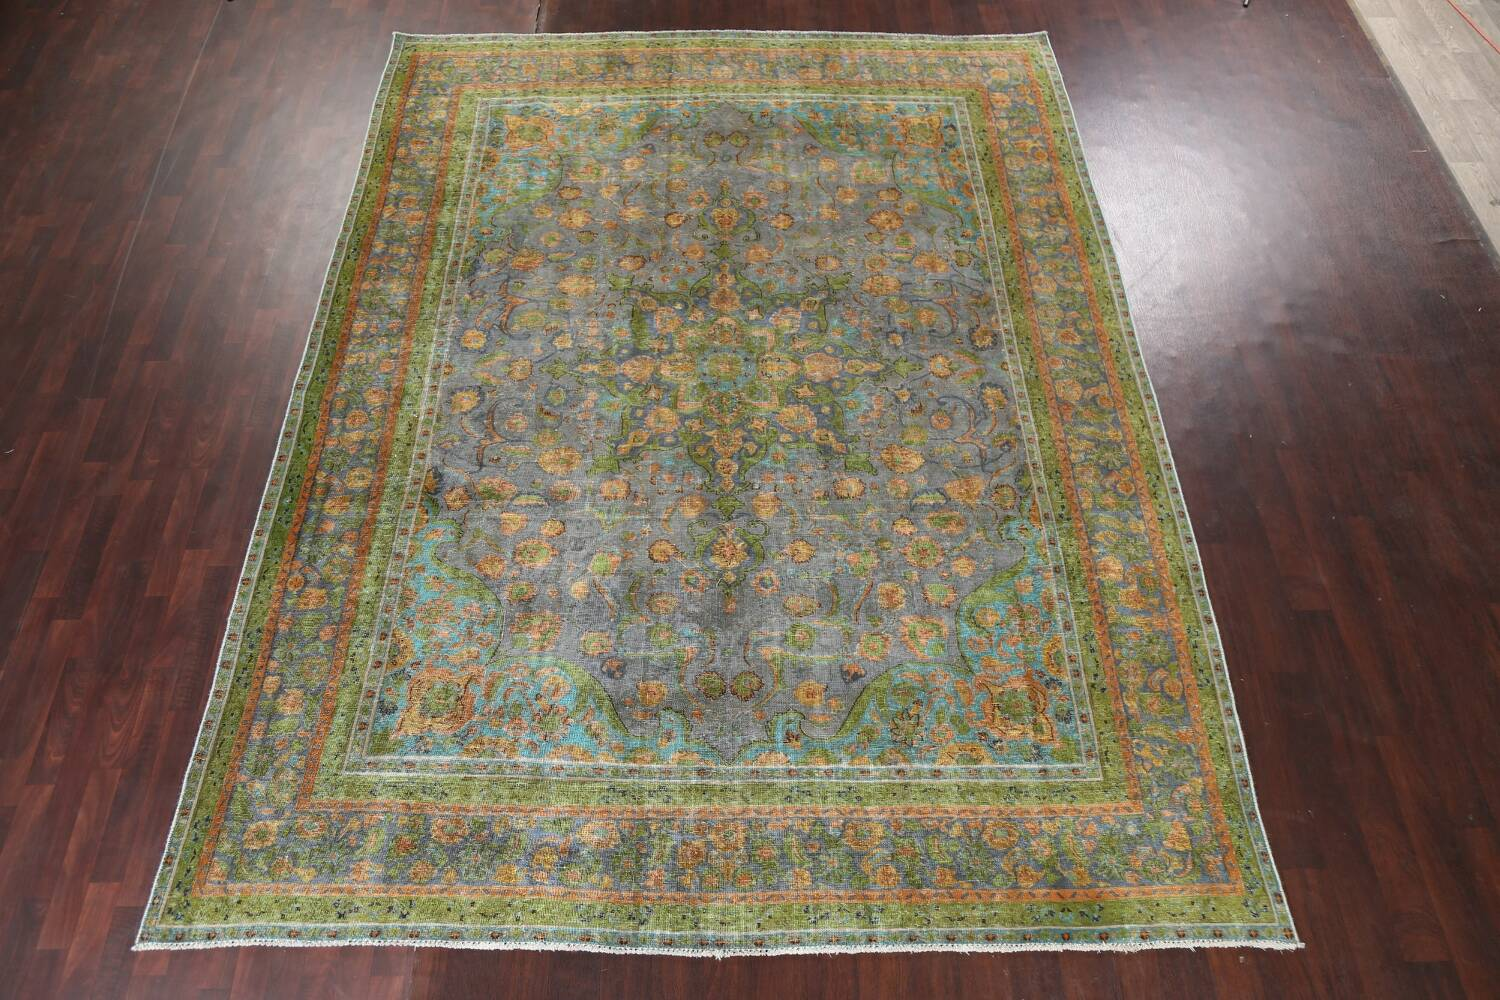 Antique Distressed Over-Dye Tabriz Persian Area Rug 9x12 image 3